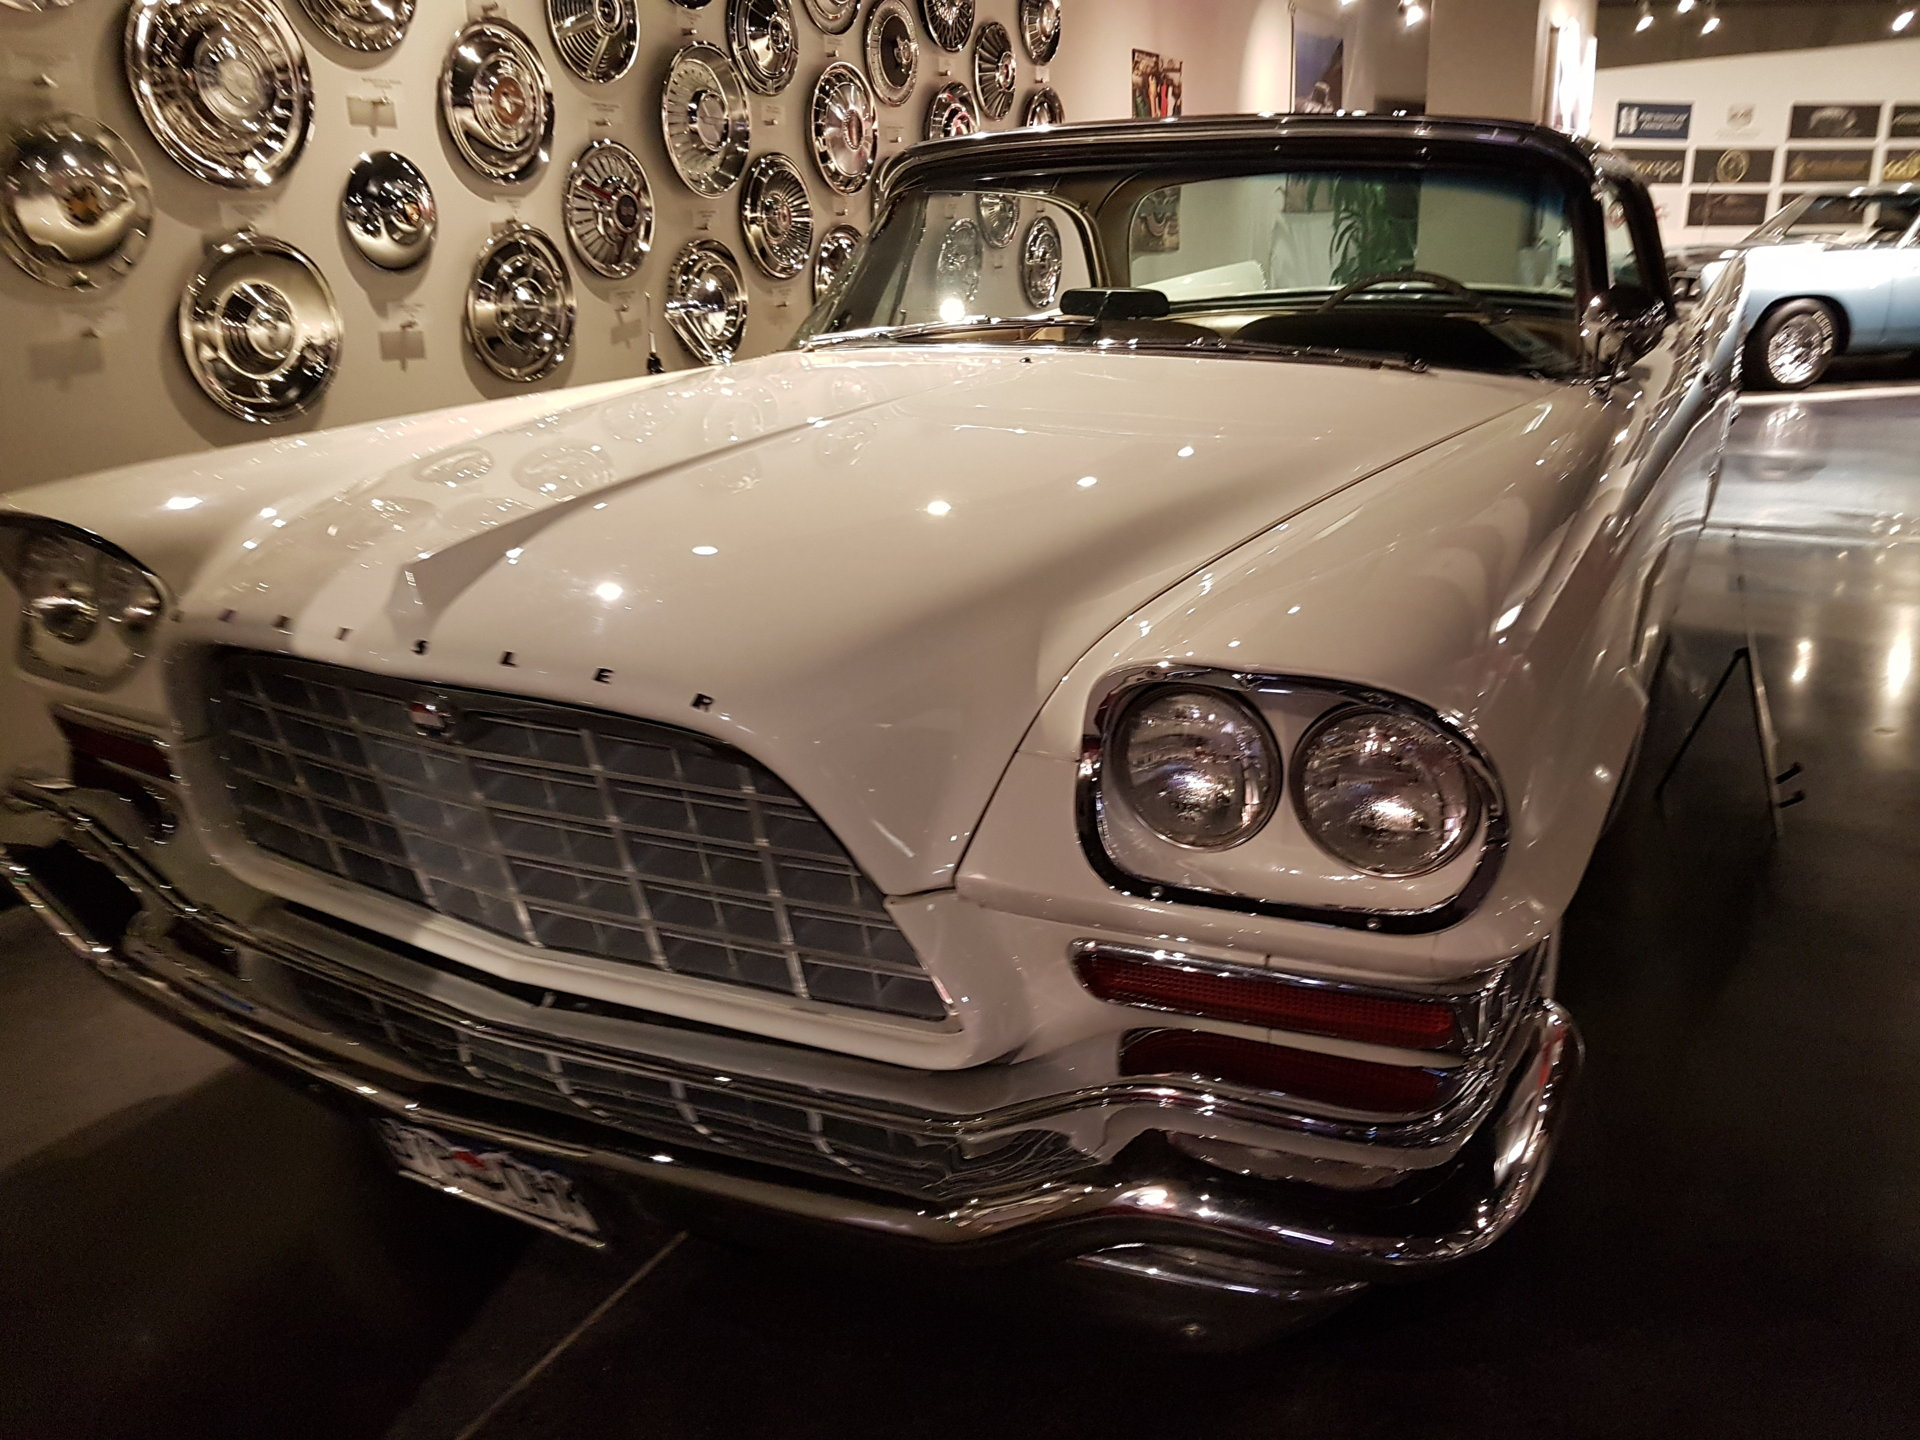 20170428_181519 Great Description About 1955 Chrysler 300 for Sale with Inspiring Images Cars Review